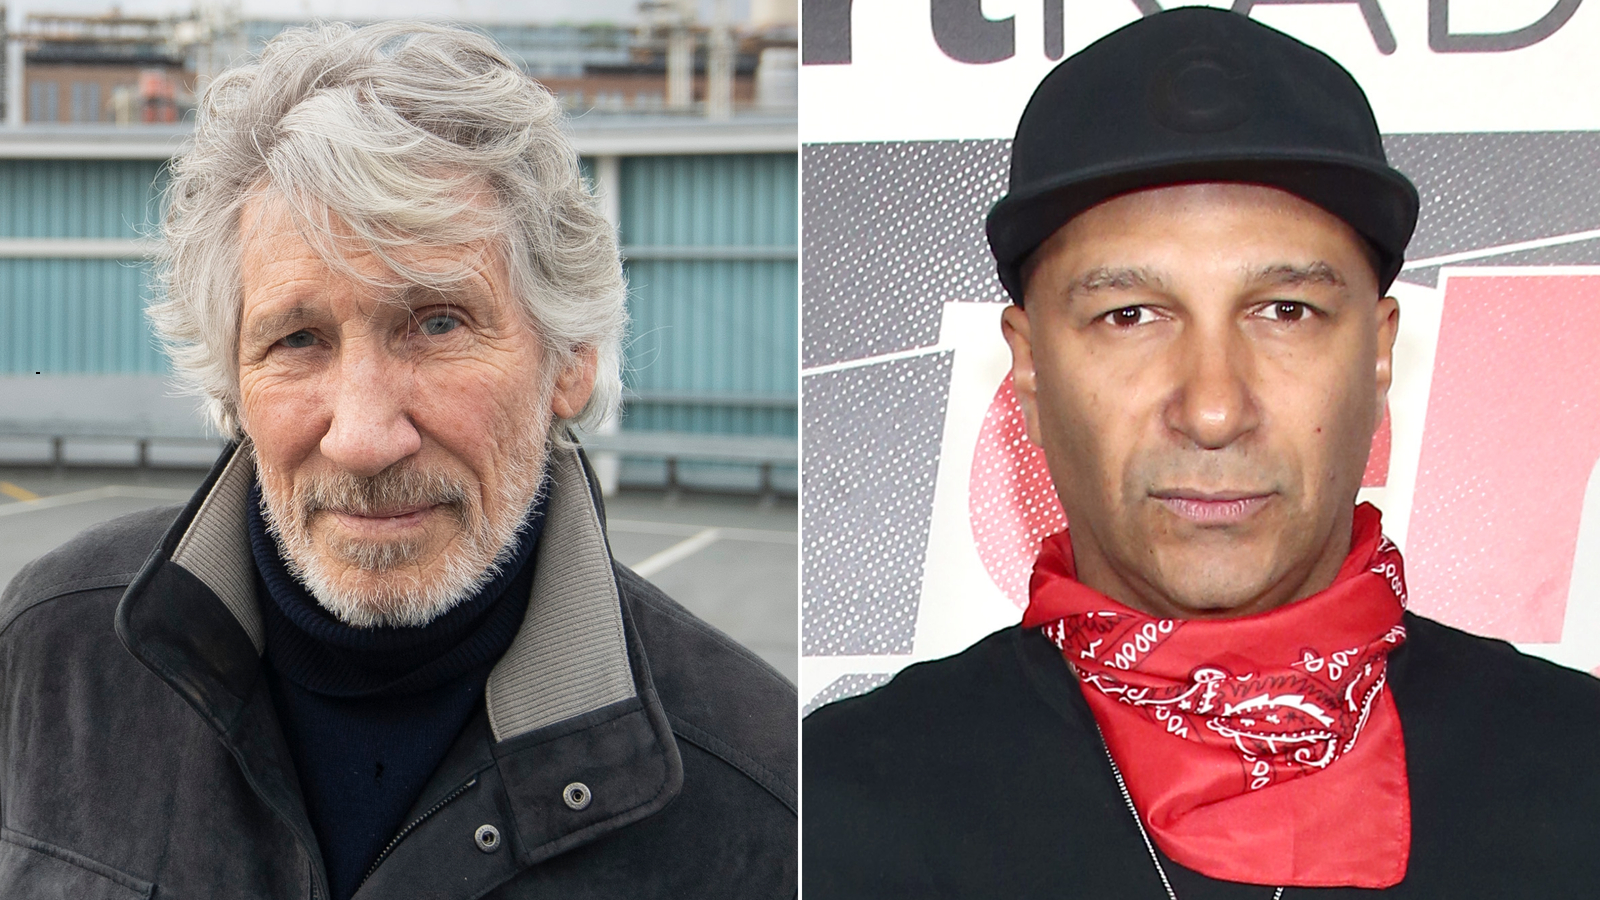 Roger Waters and Tom Morello to perform in an online benefit concert for Palestinian musicians in Gaza